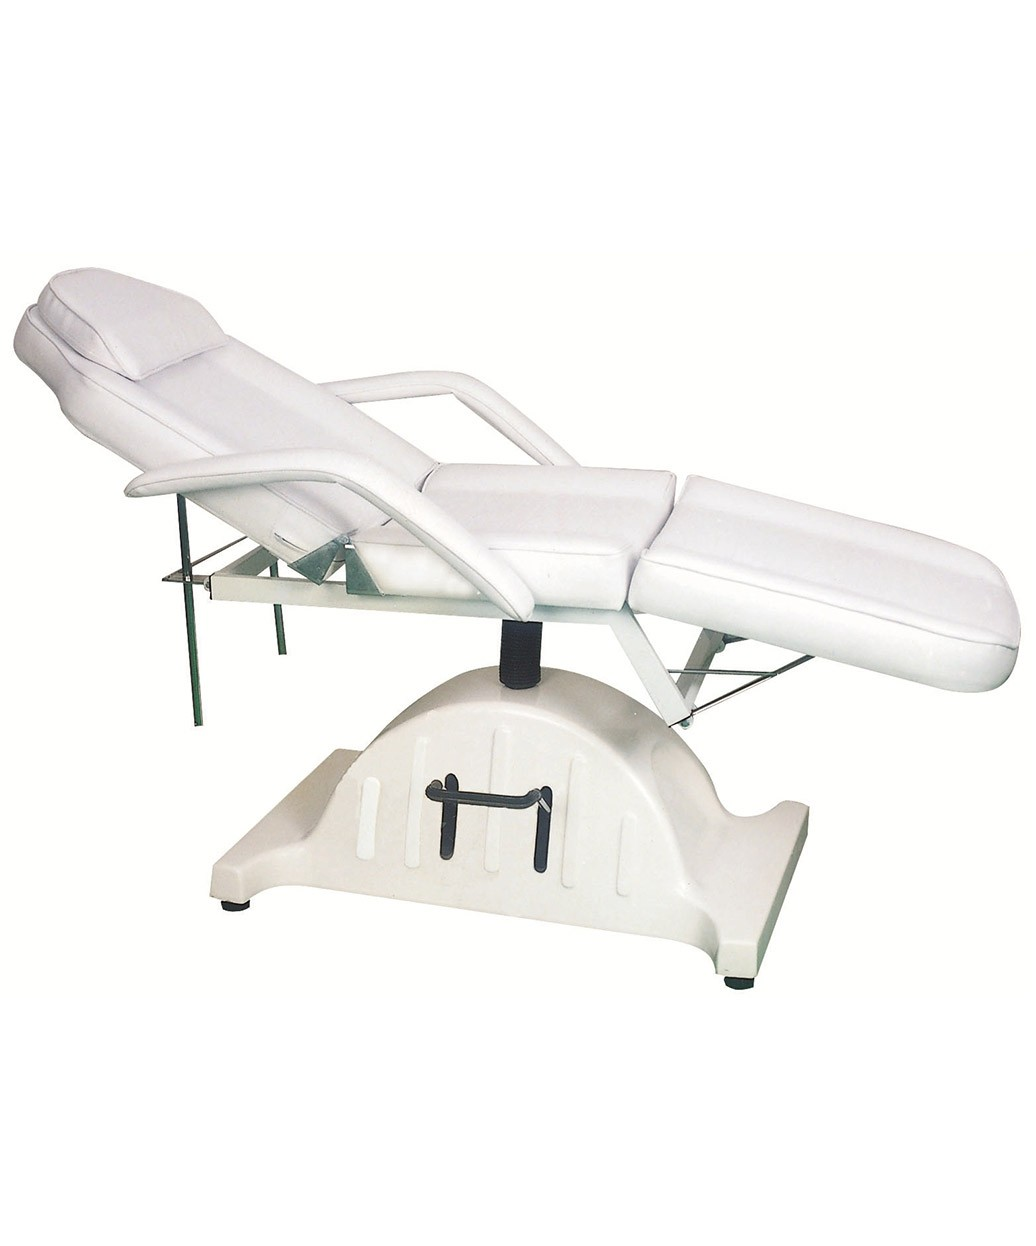 Facial Bed For Sale 28 Images Archive Facial Steamer And 3 Massage Bed For Sale Montana